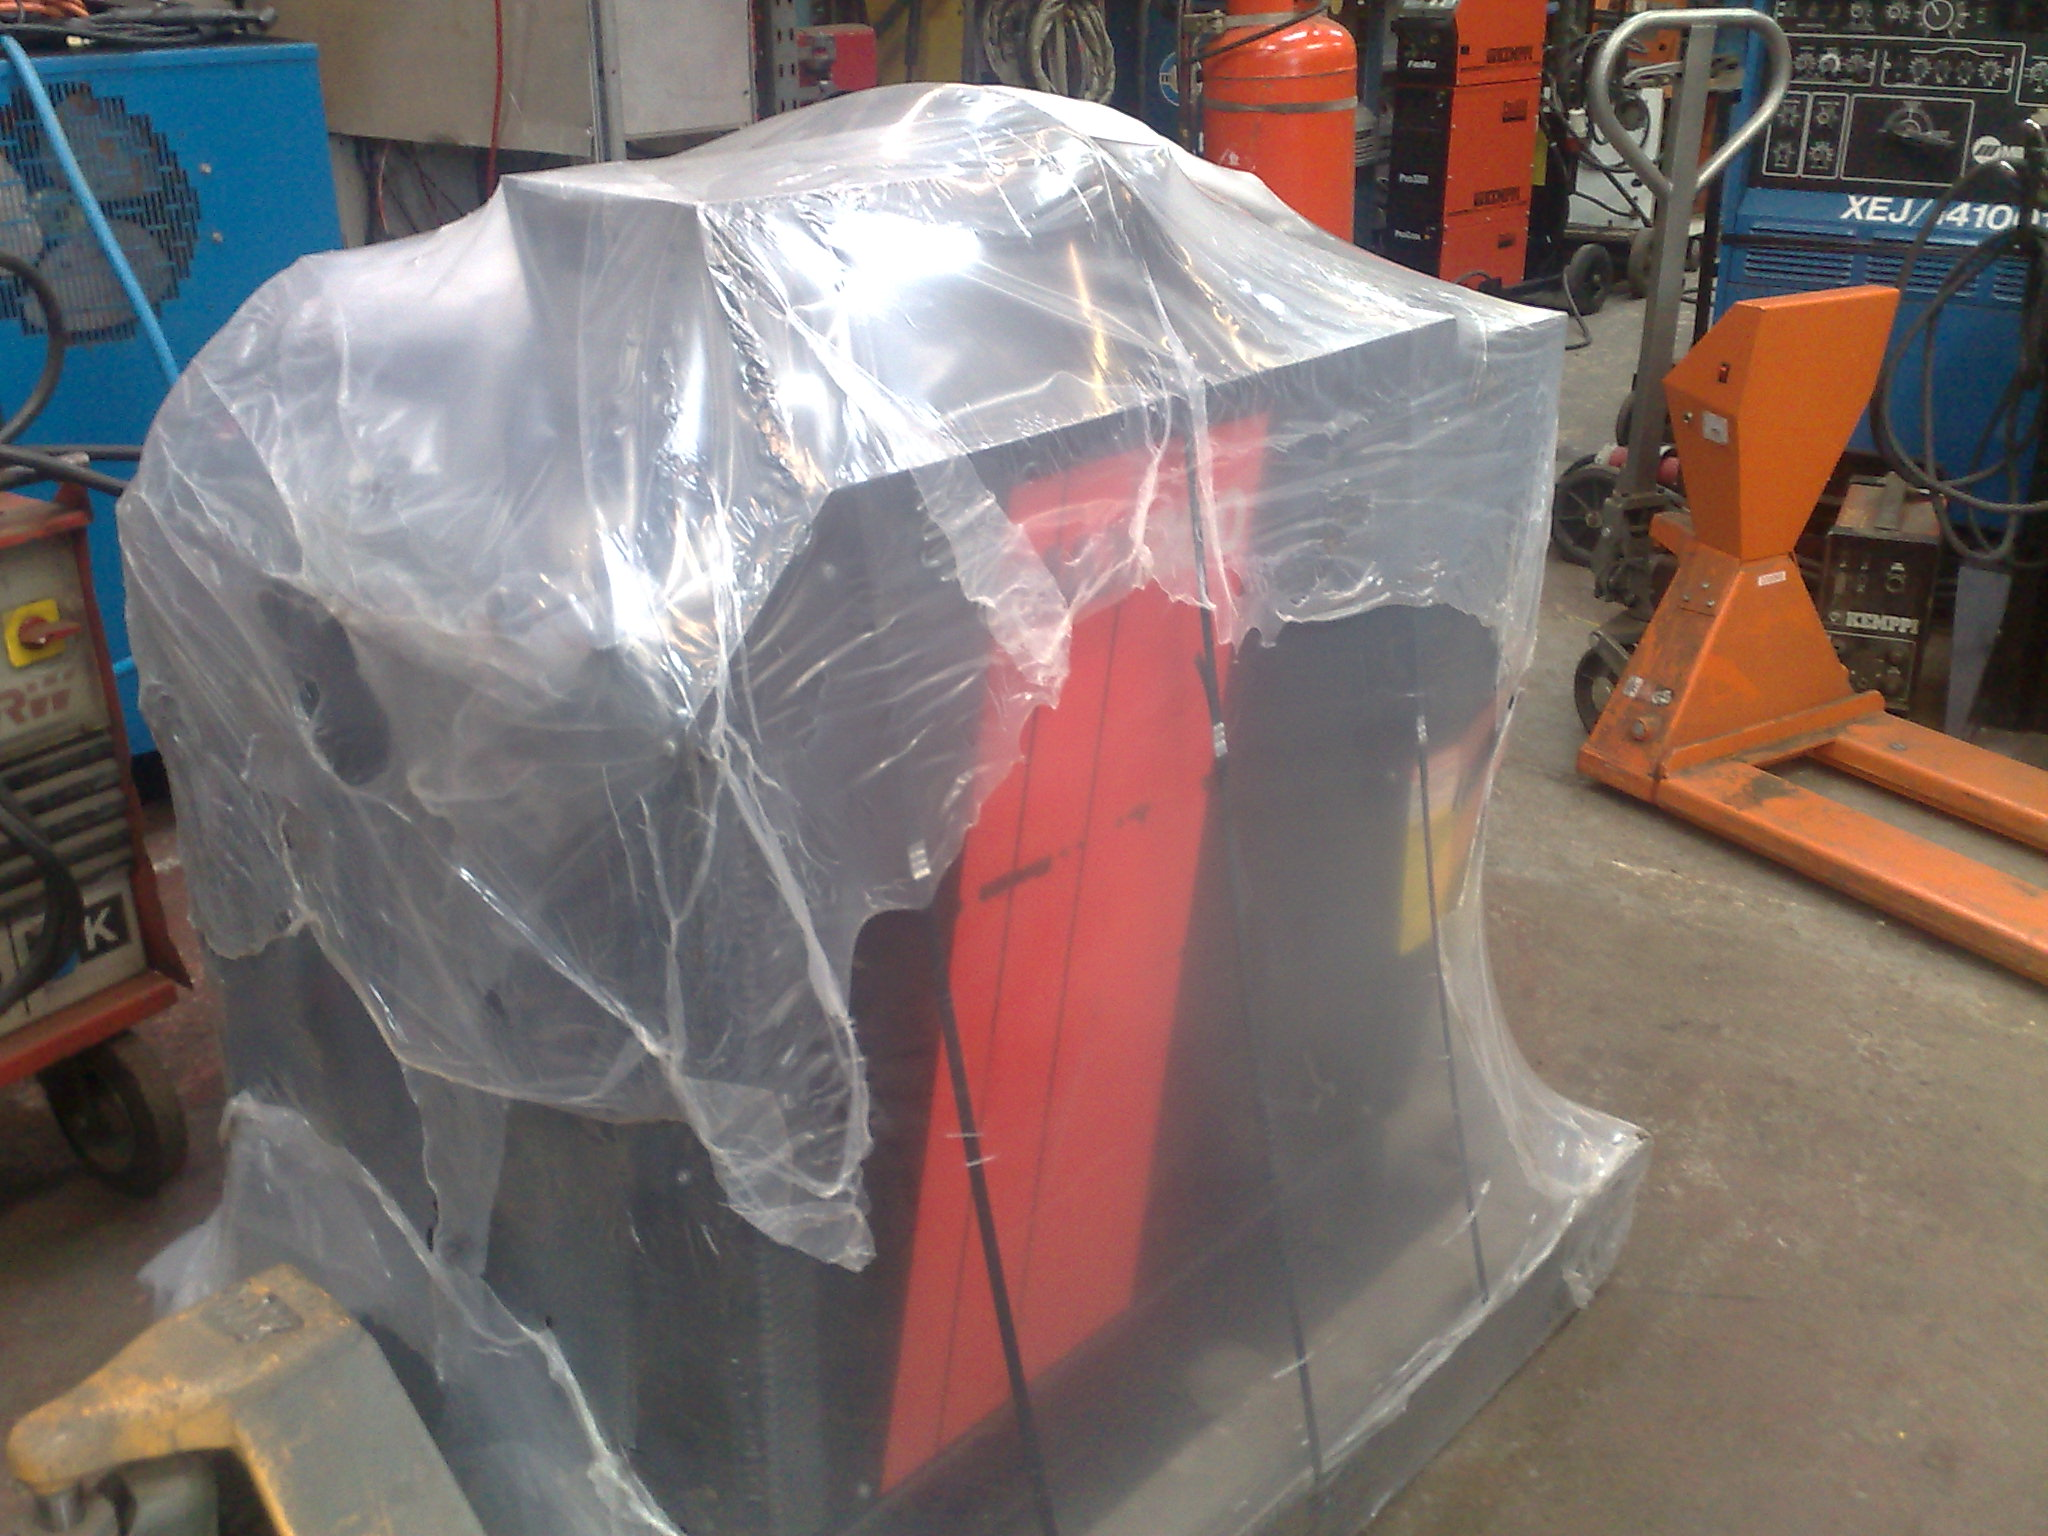 hypertherm plasma cutter supplied by Westermans Welding